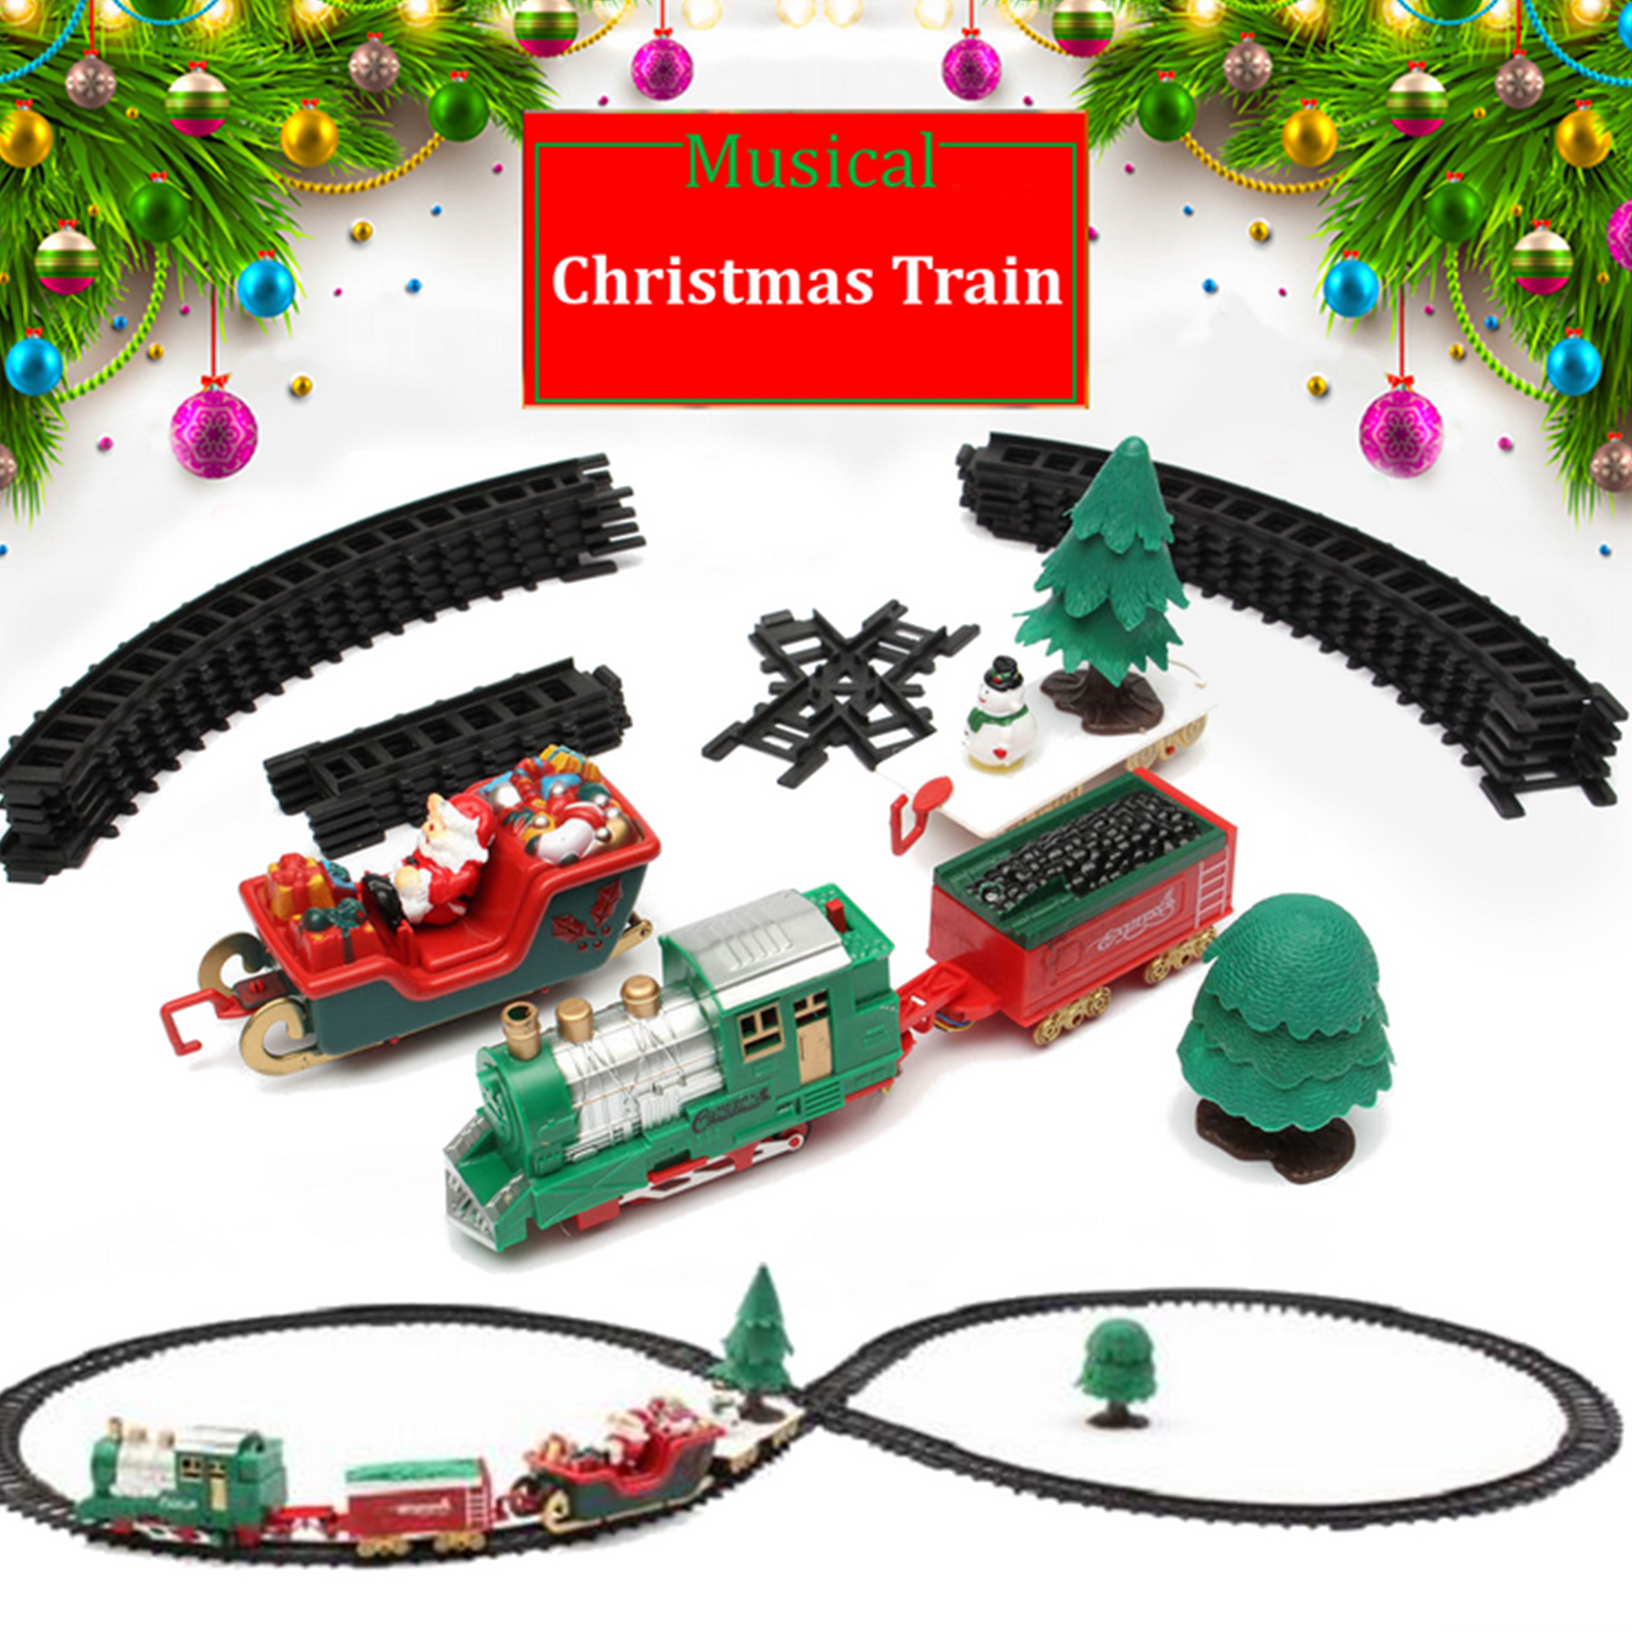 Details about Traditional Around the Christmas Tree Train Set Decoration Music Sound & Lights